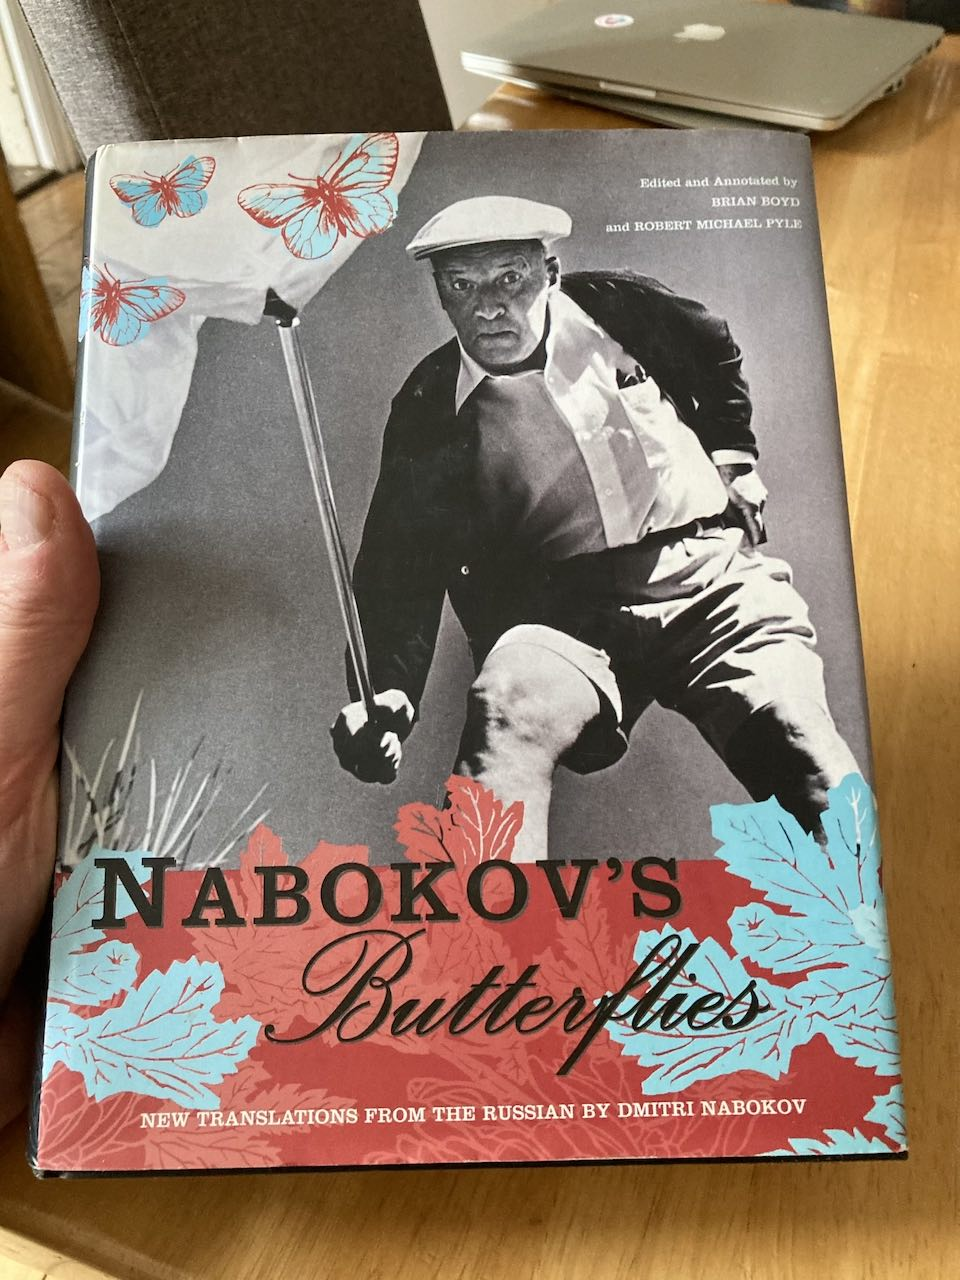 Nabokov's Butterflies cover – striking red, blue and black palette and mixed fonts.